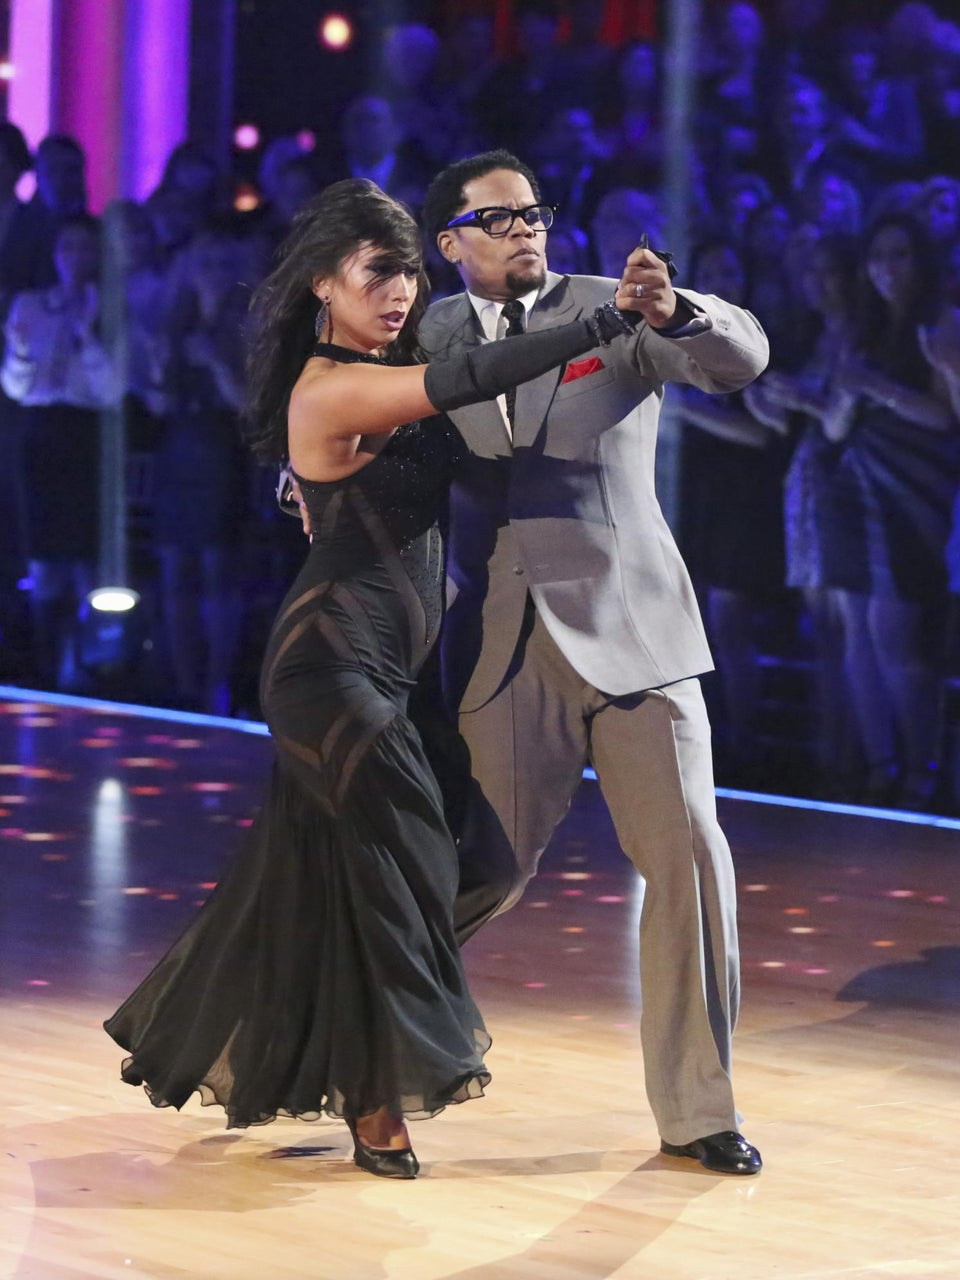 Coffee Talk: D.L. Hughley Eliminated from 'Dancing with the Stars'